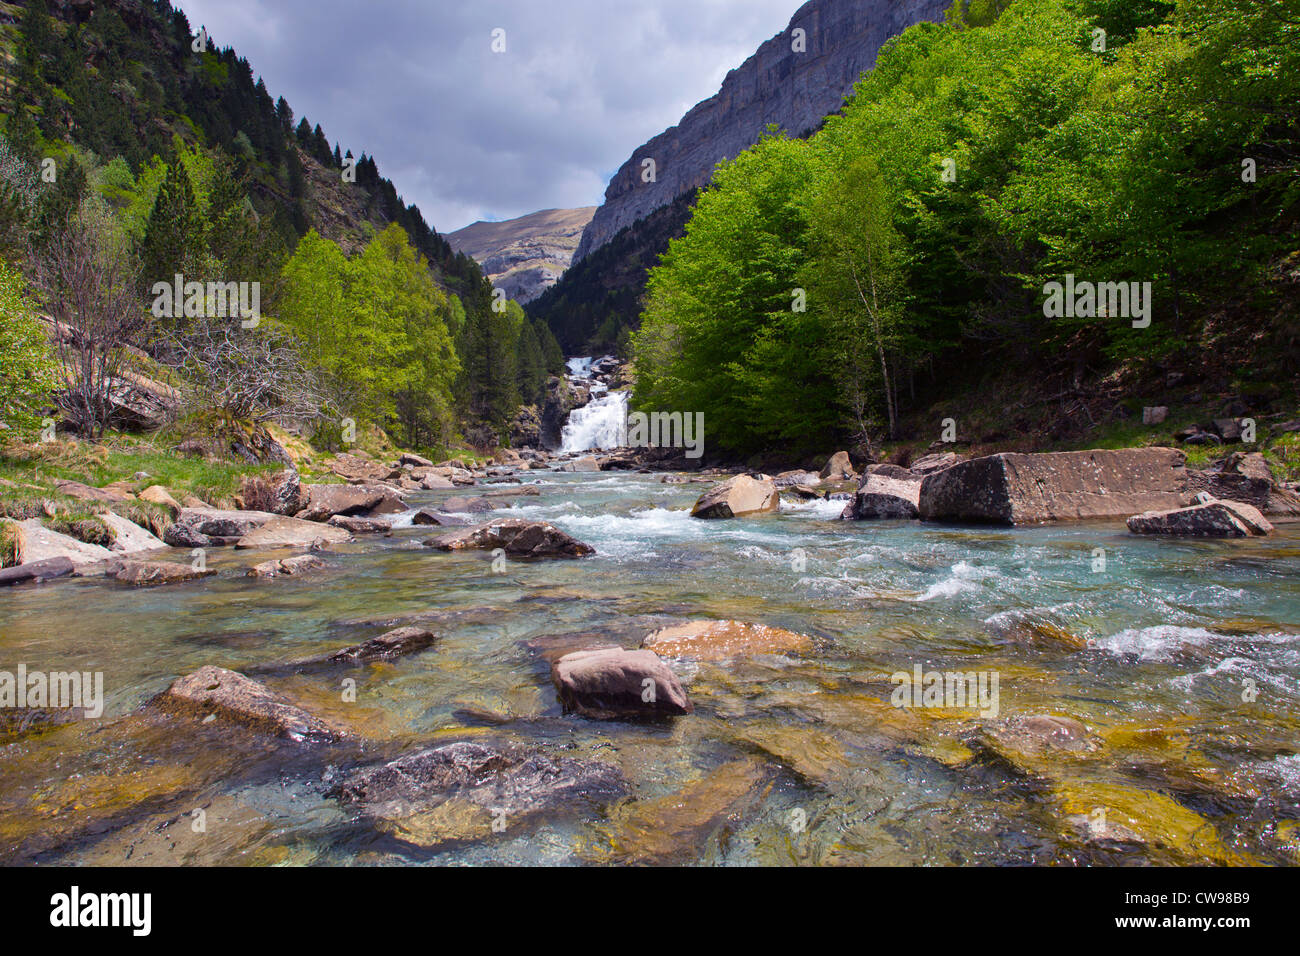 Ordesa Vally; National Park; Spain; waterfall - Stock Image